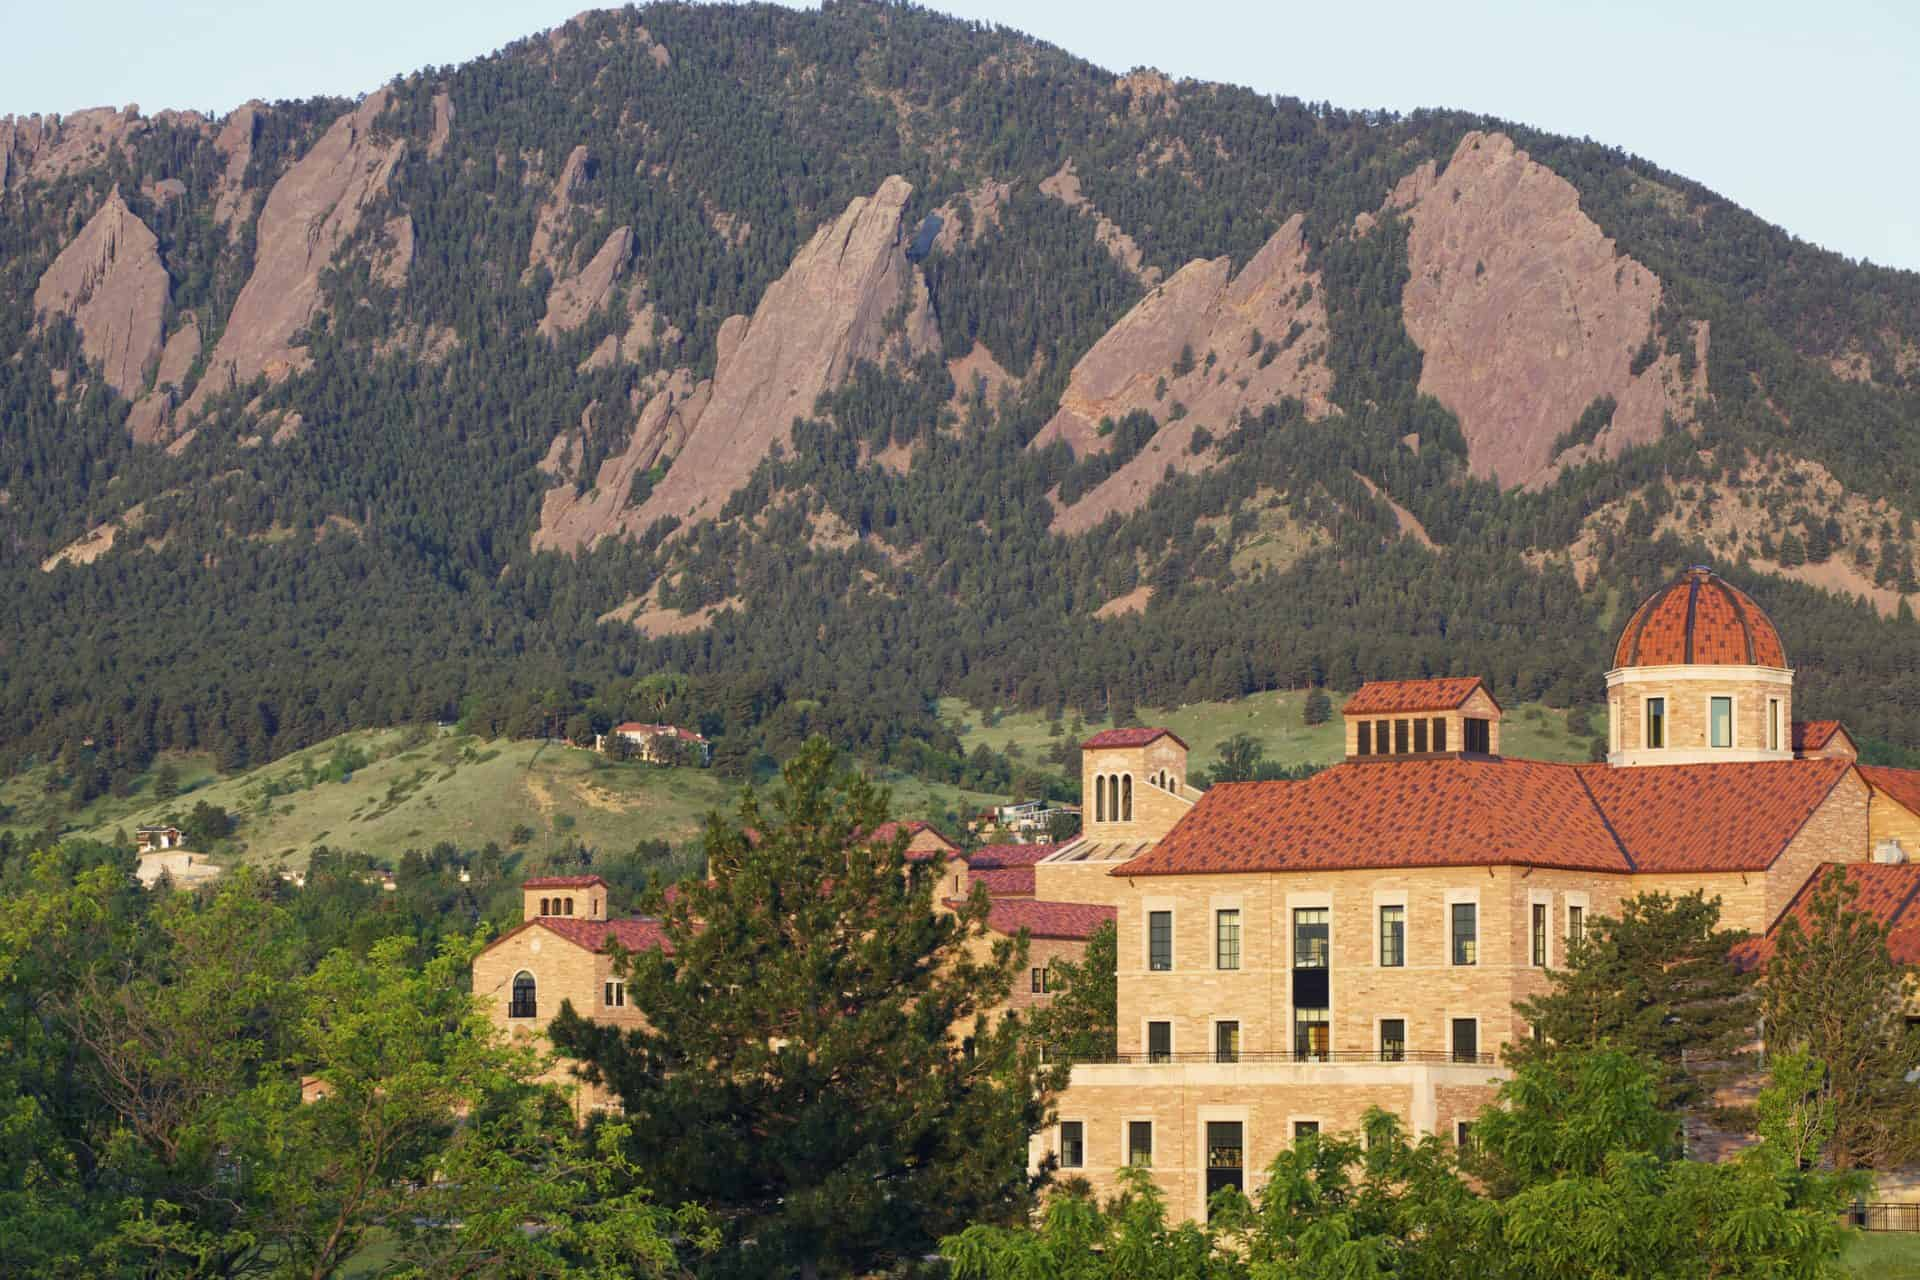 University of Colorado campus in Boulder Colorado